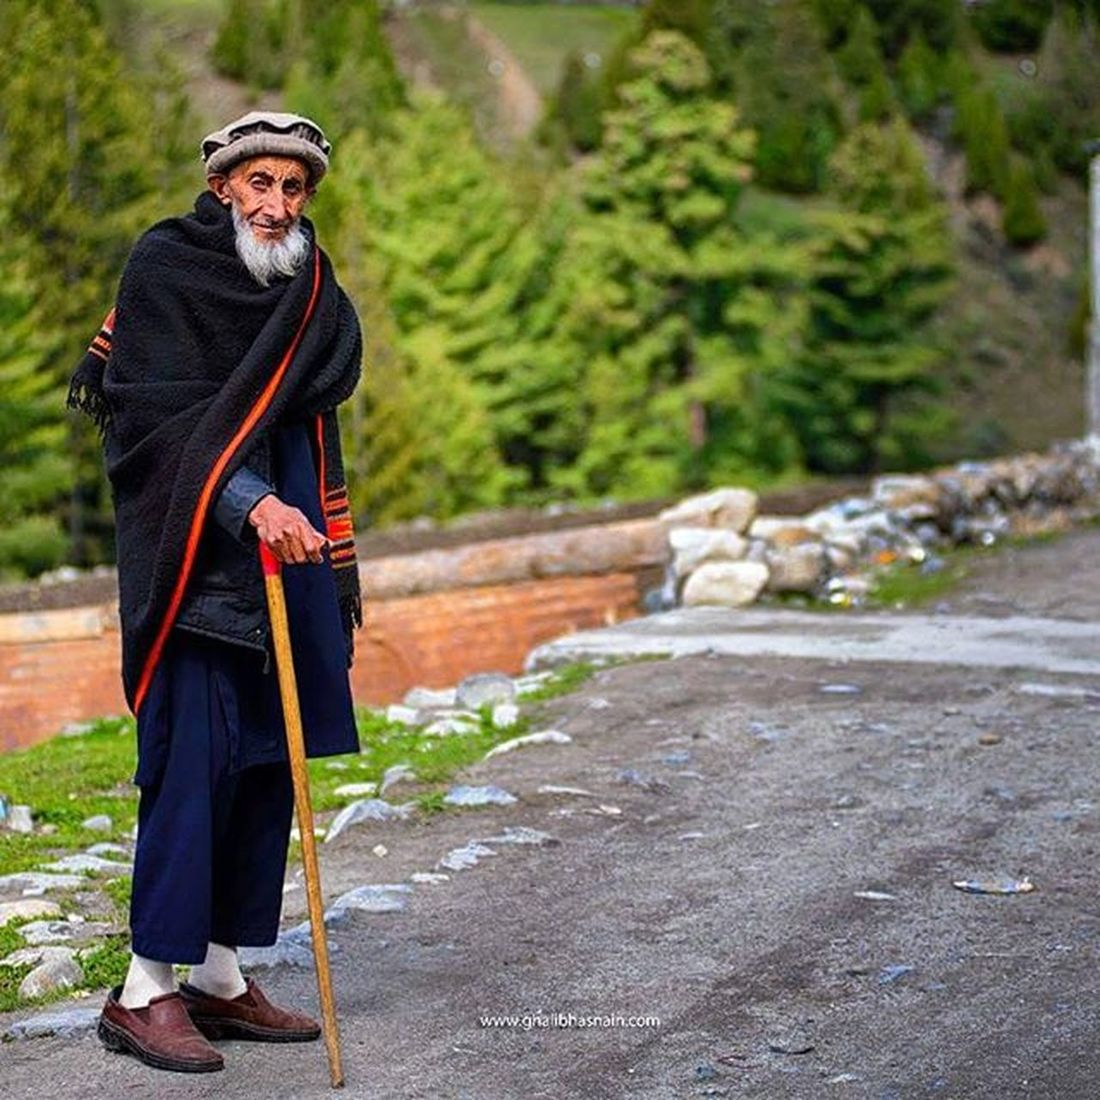 Old man from Naltar Valley,he is such a fine person who stop at our camp-side and ask for anything we need, he arrange fresh cherries from his house and sit with us and share the wonders from his valley. He love everything in this country Pakistan. Naltar Gilgitbaltistan Hunza Pakistan Ghalibhasnainphotography Ghalibhasnain Oldman Portrait Travelogue GHstories Dawndotcom Tour2105